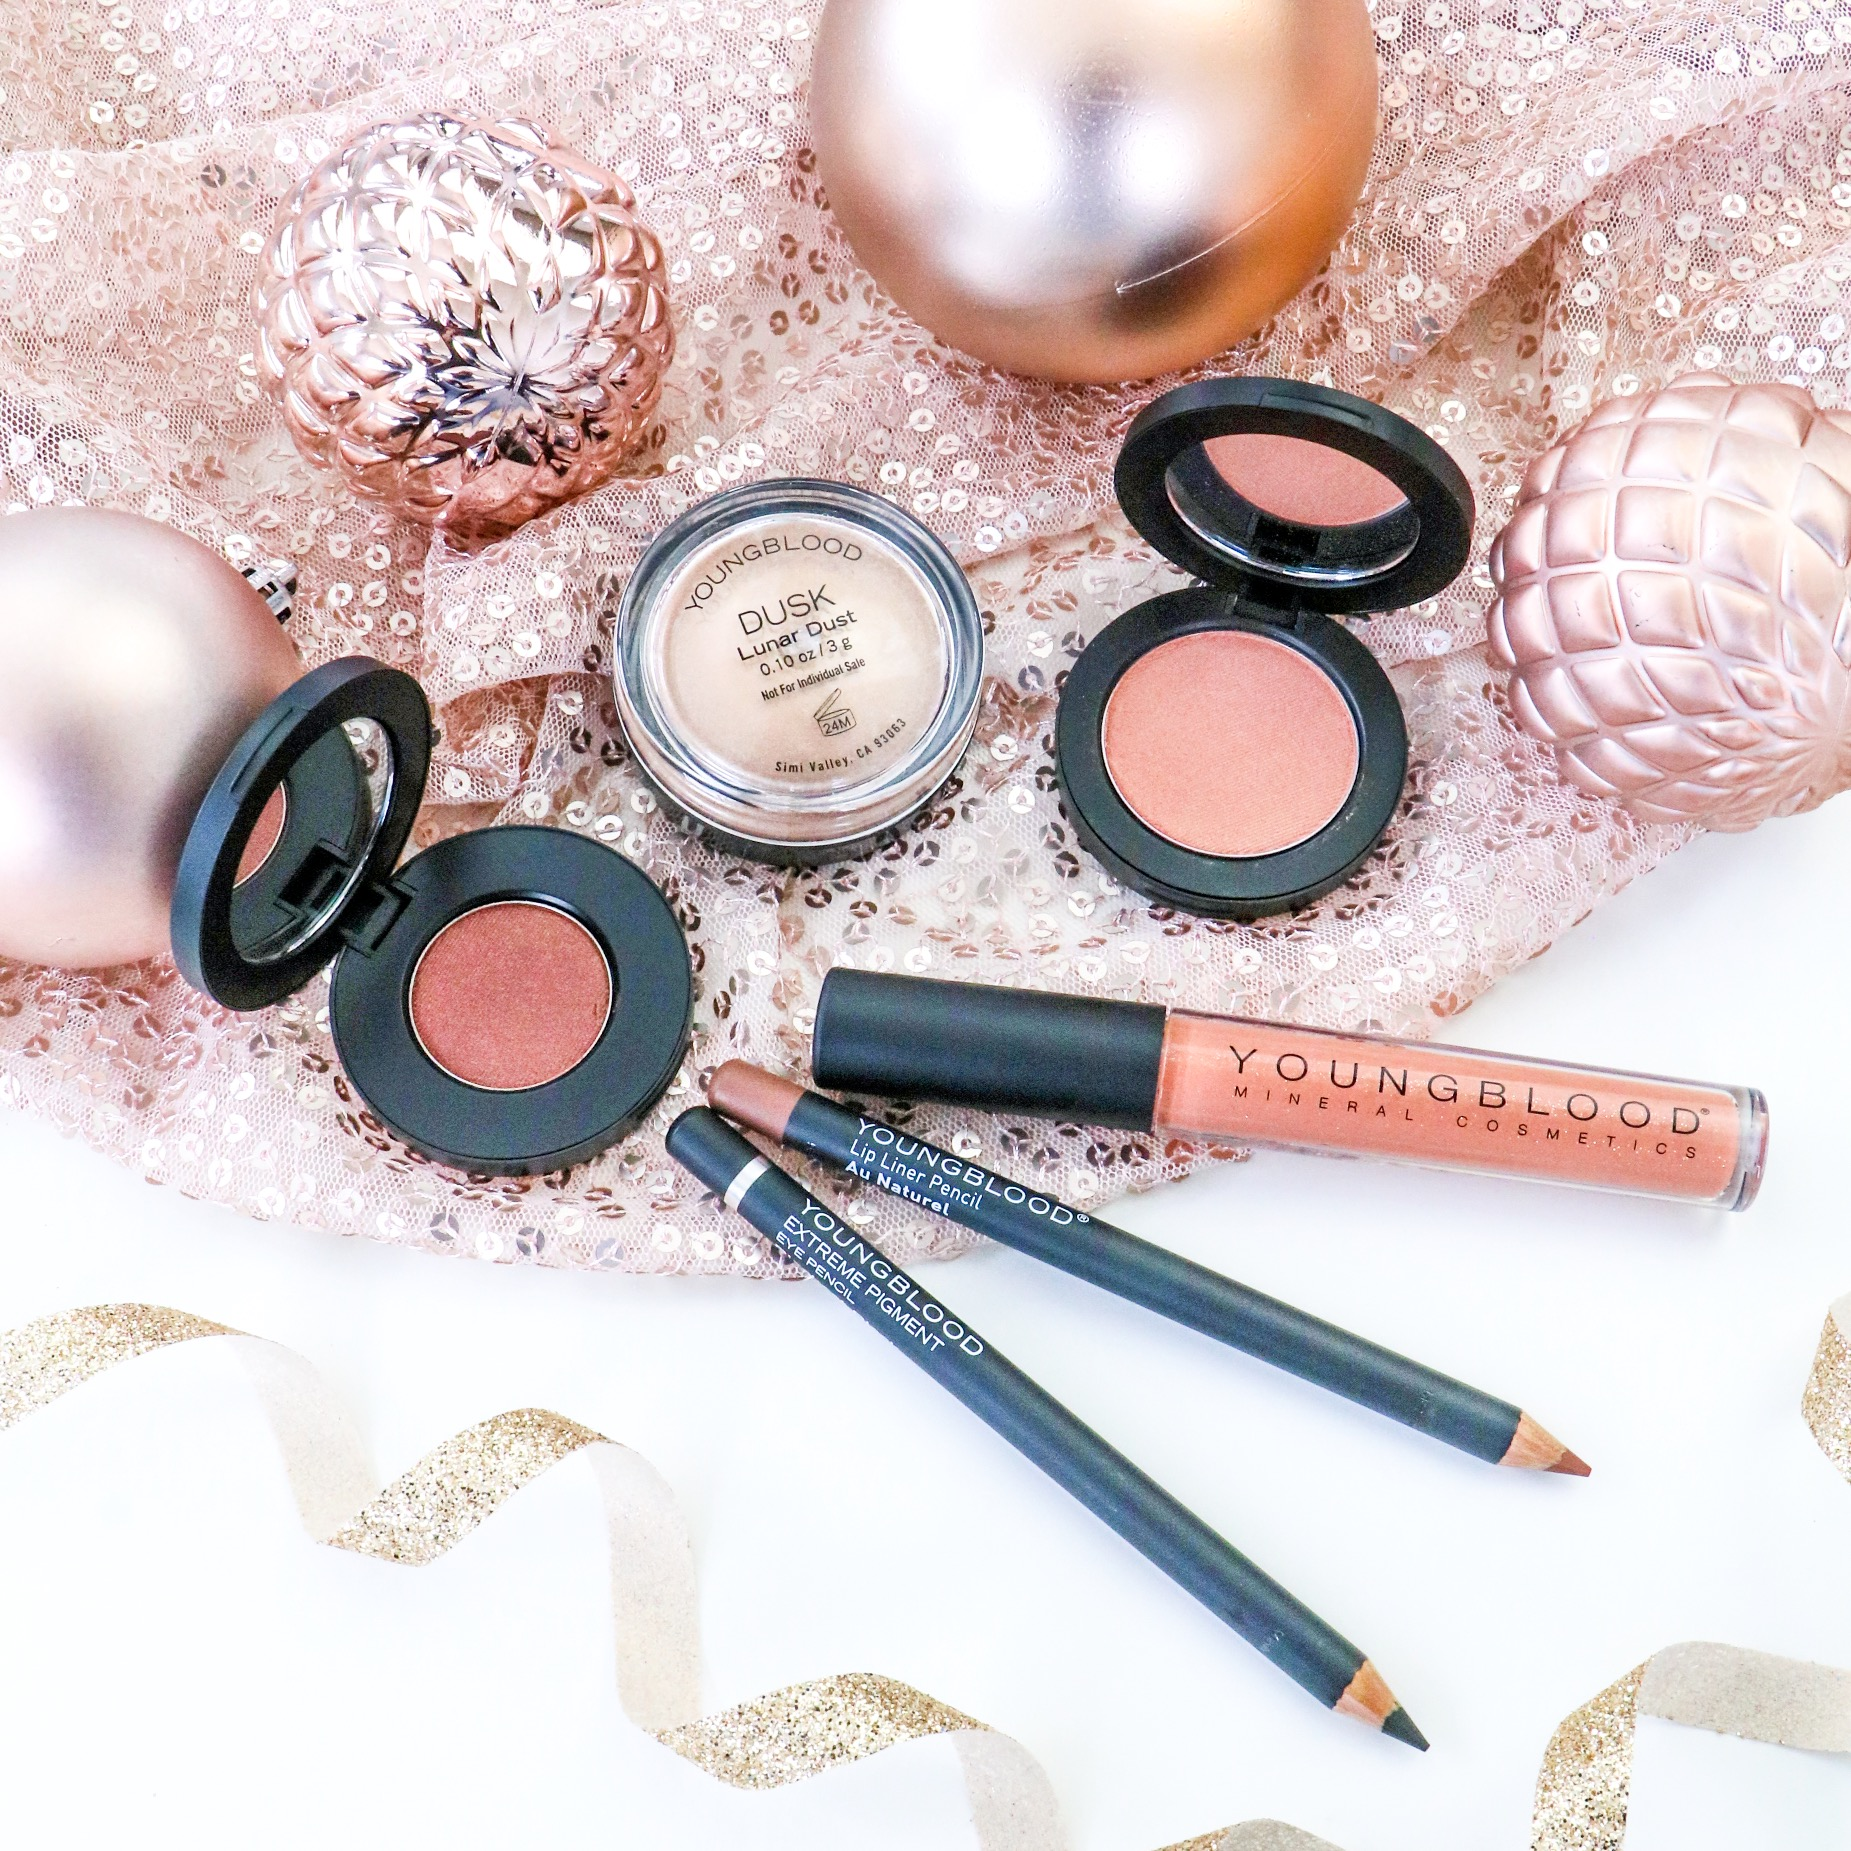 Youngblood Cosmetics Cali Festival Kit - Cruelty Free Gift Guide